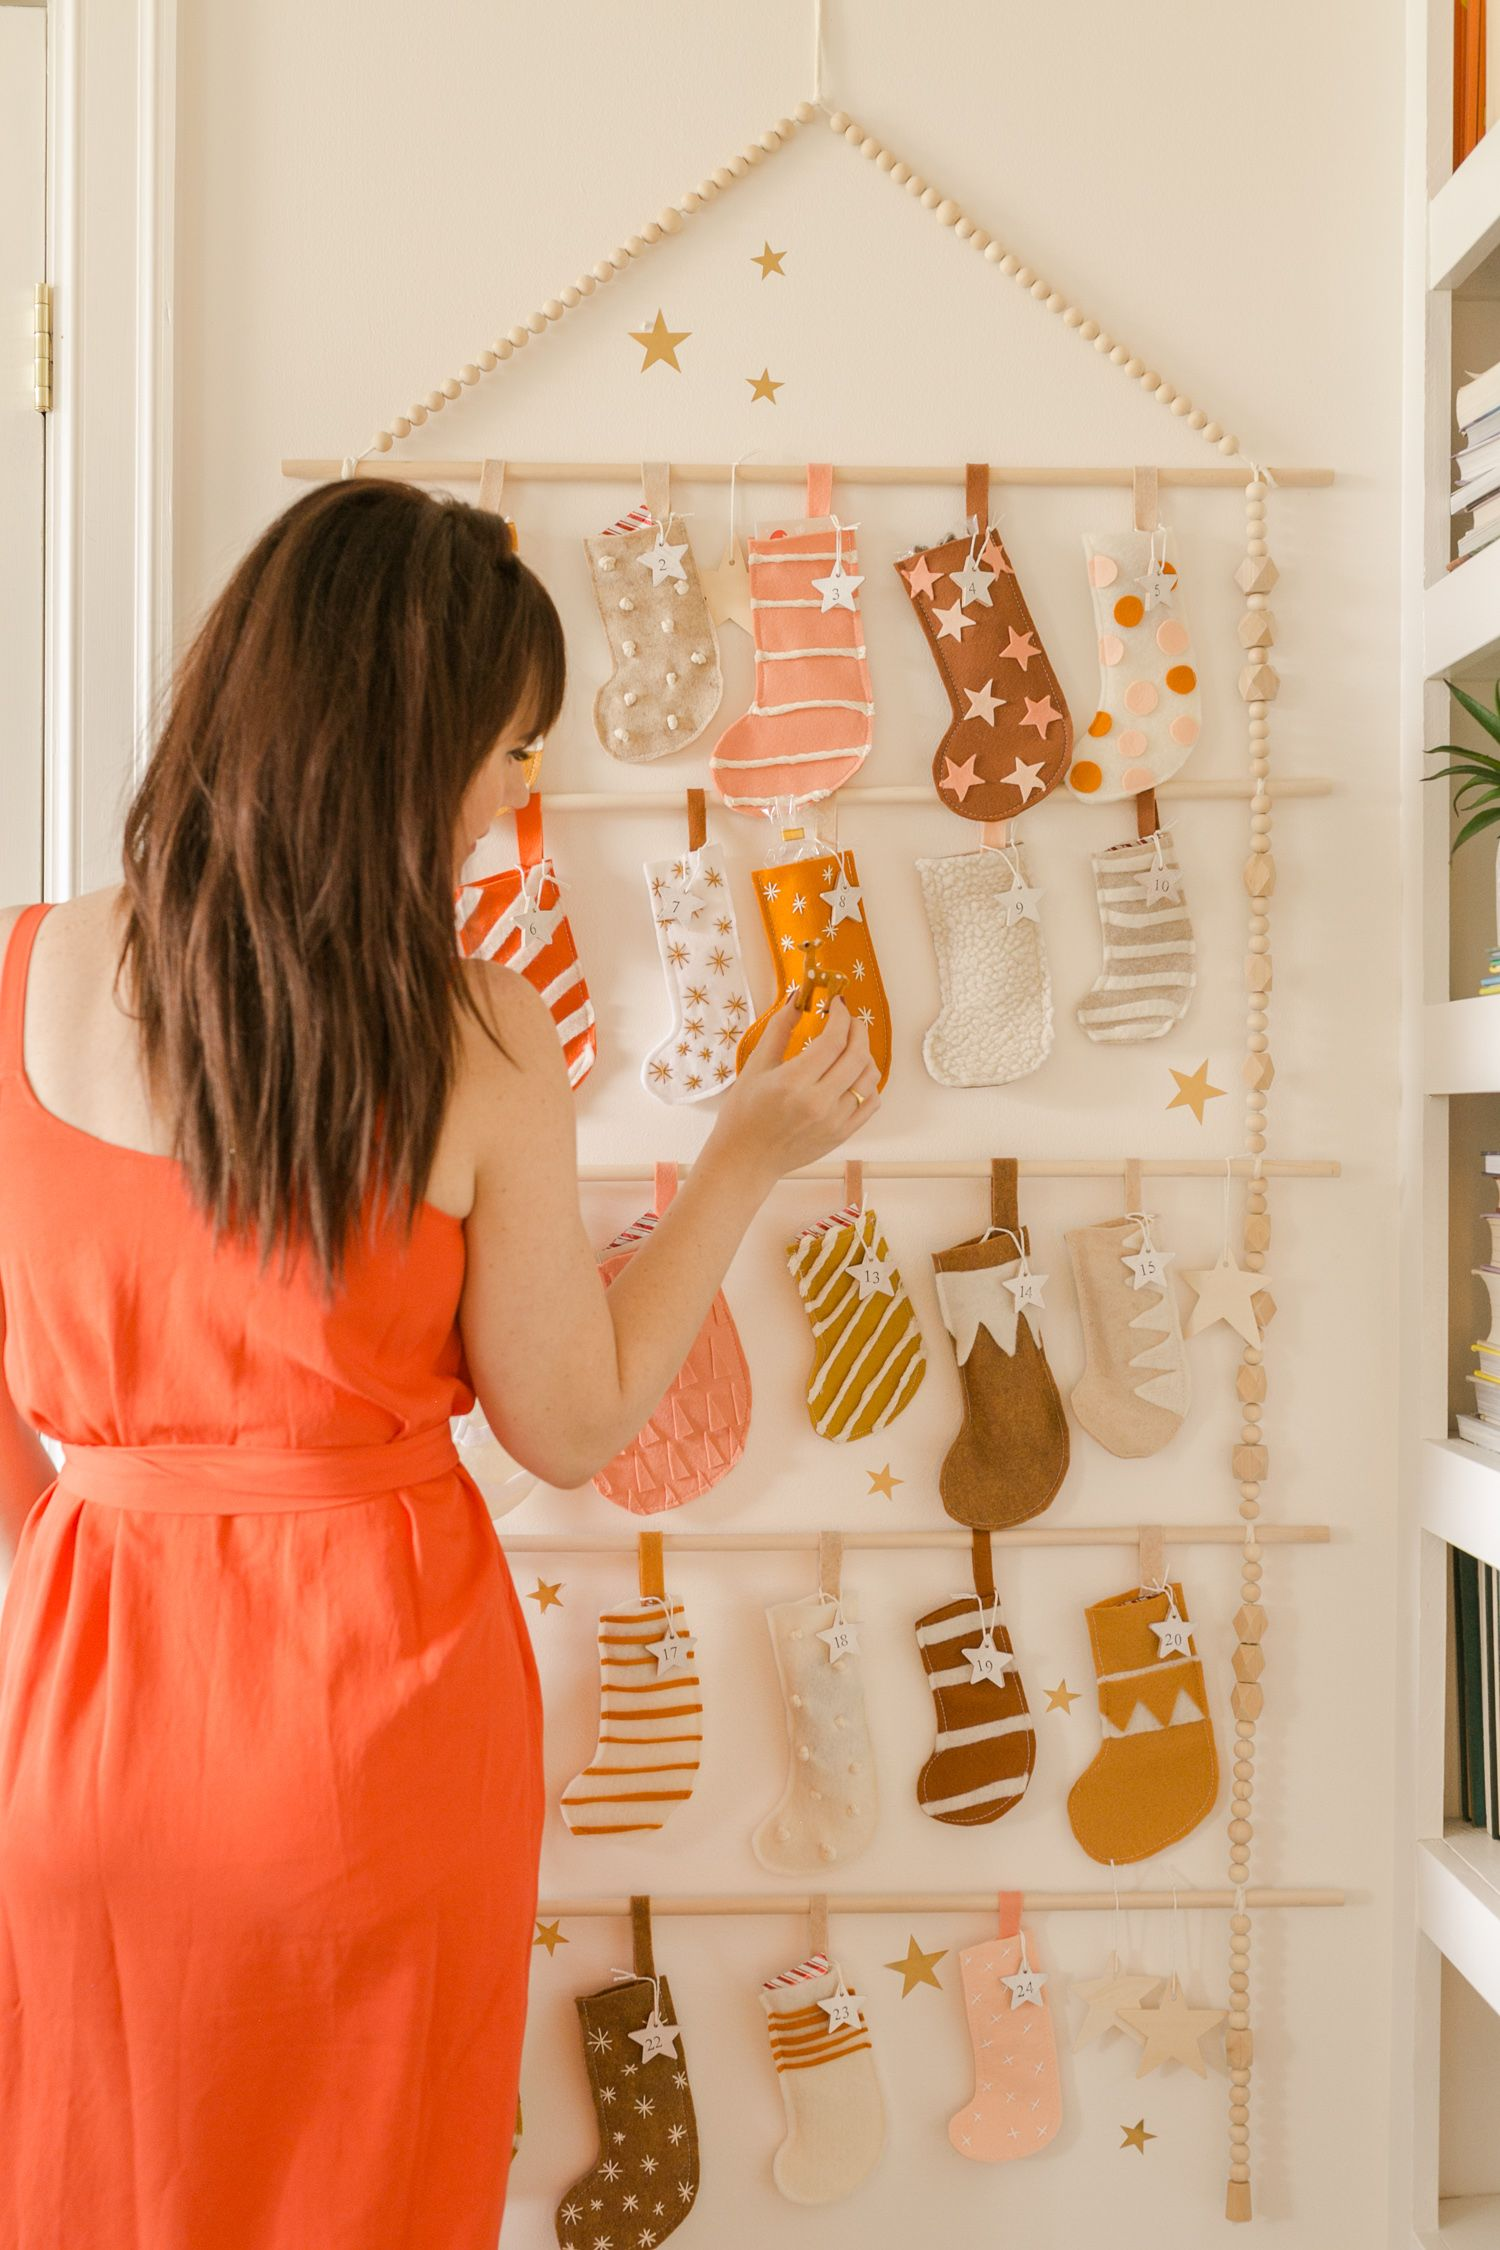 Heirloom Advent Calendar DIY - A Beautiful Mess